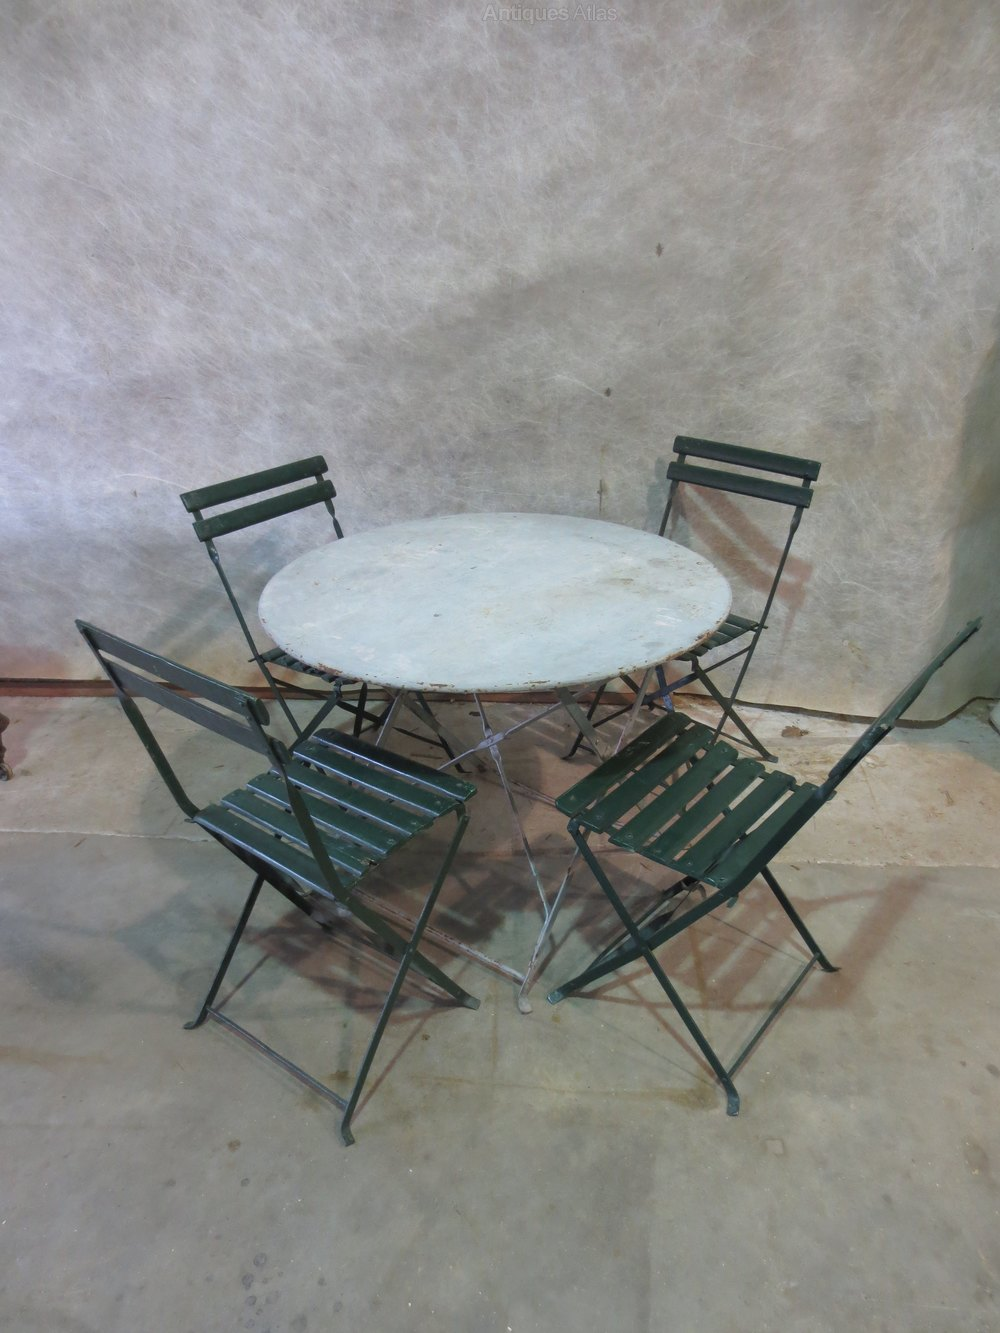 Antiques atlas french garden table and chairs French metal garden furniture